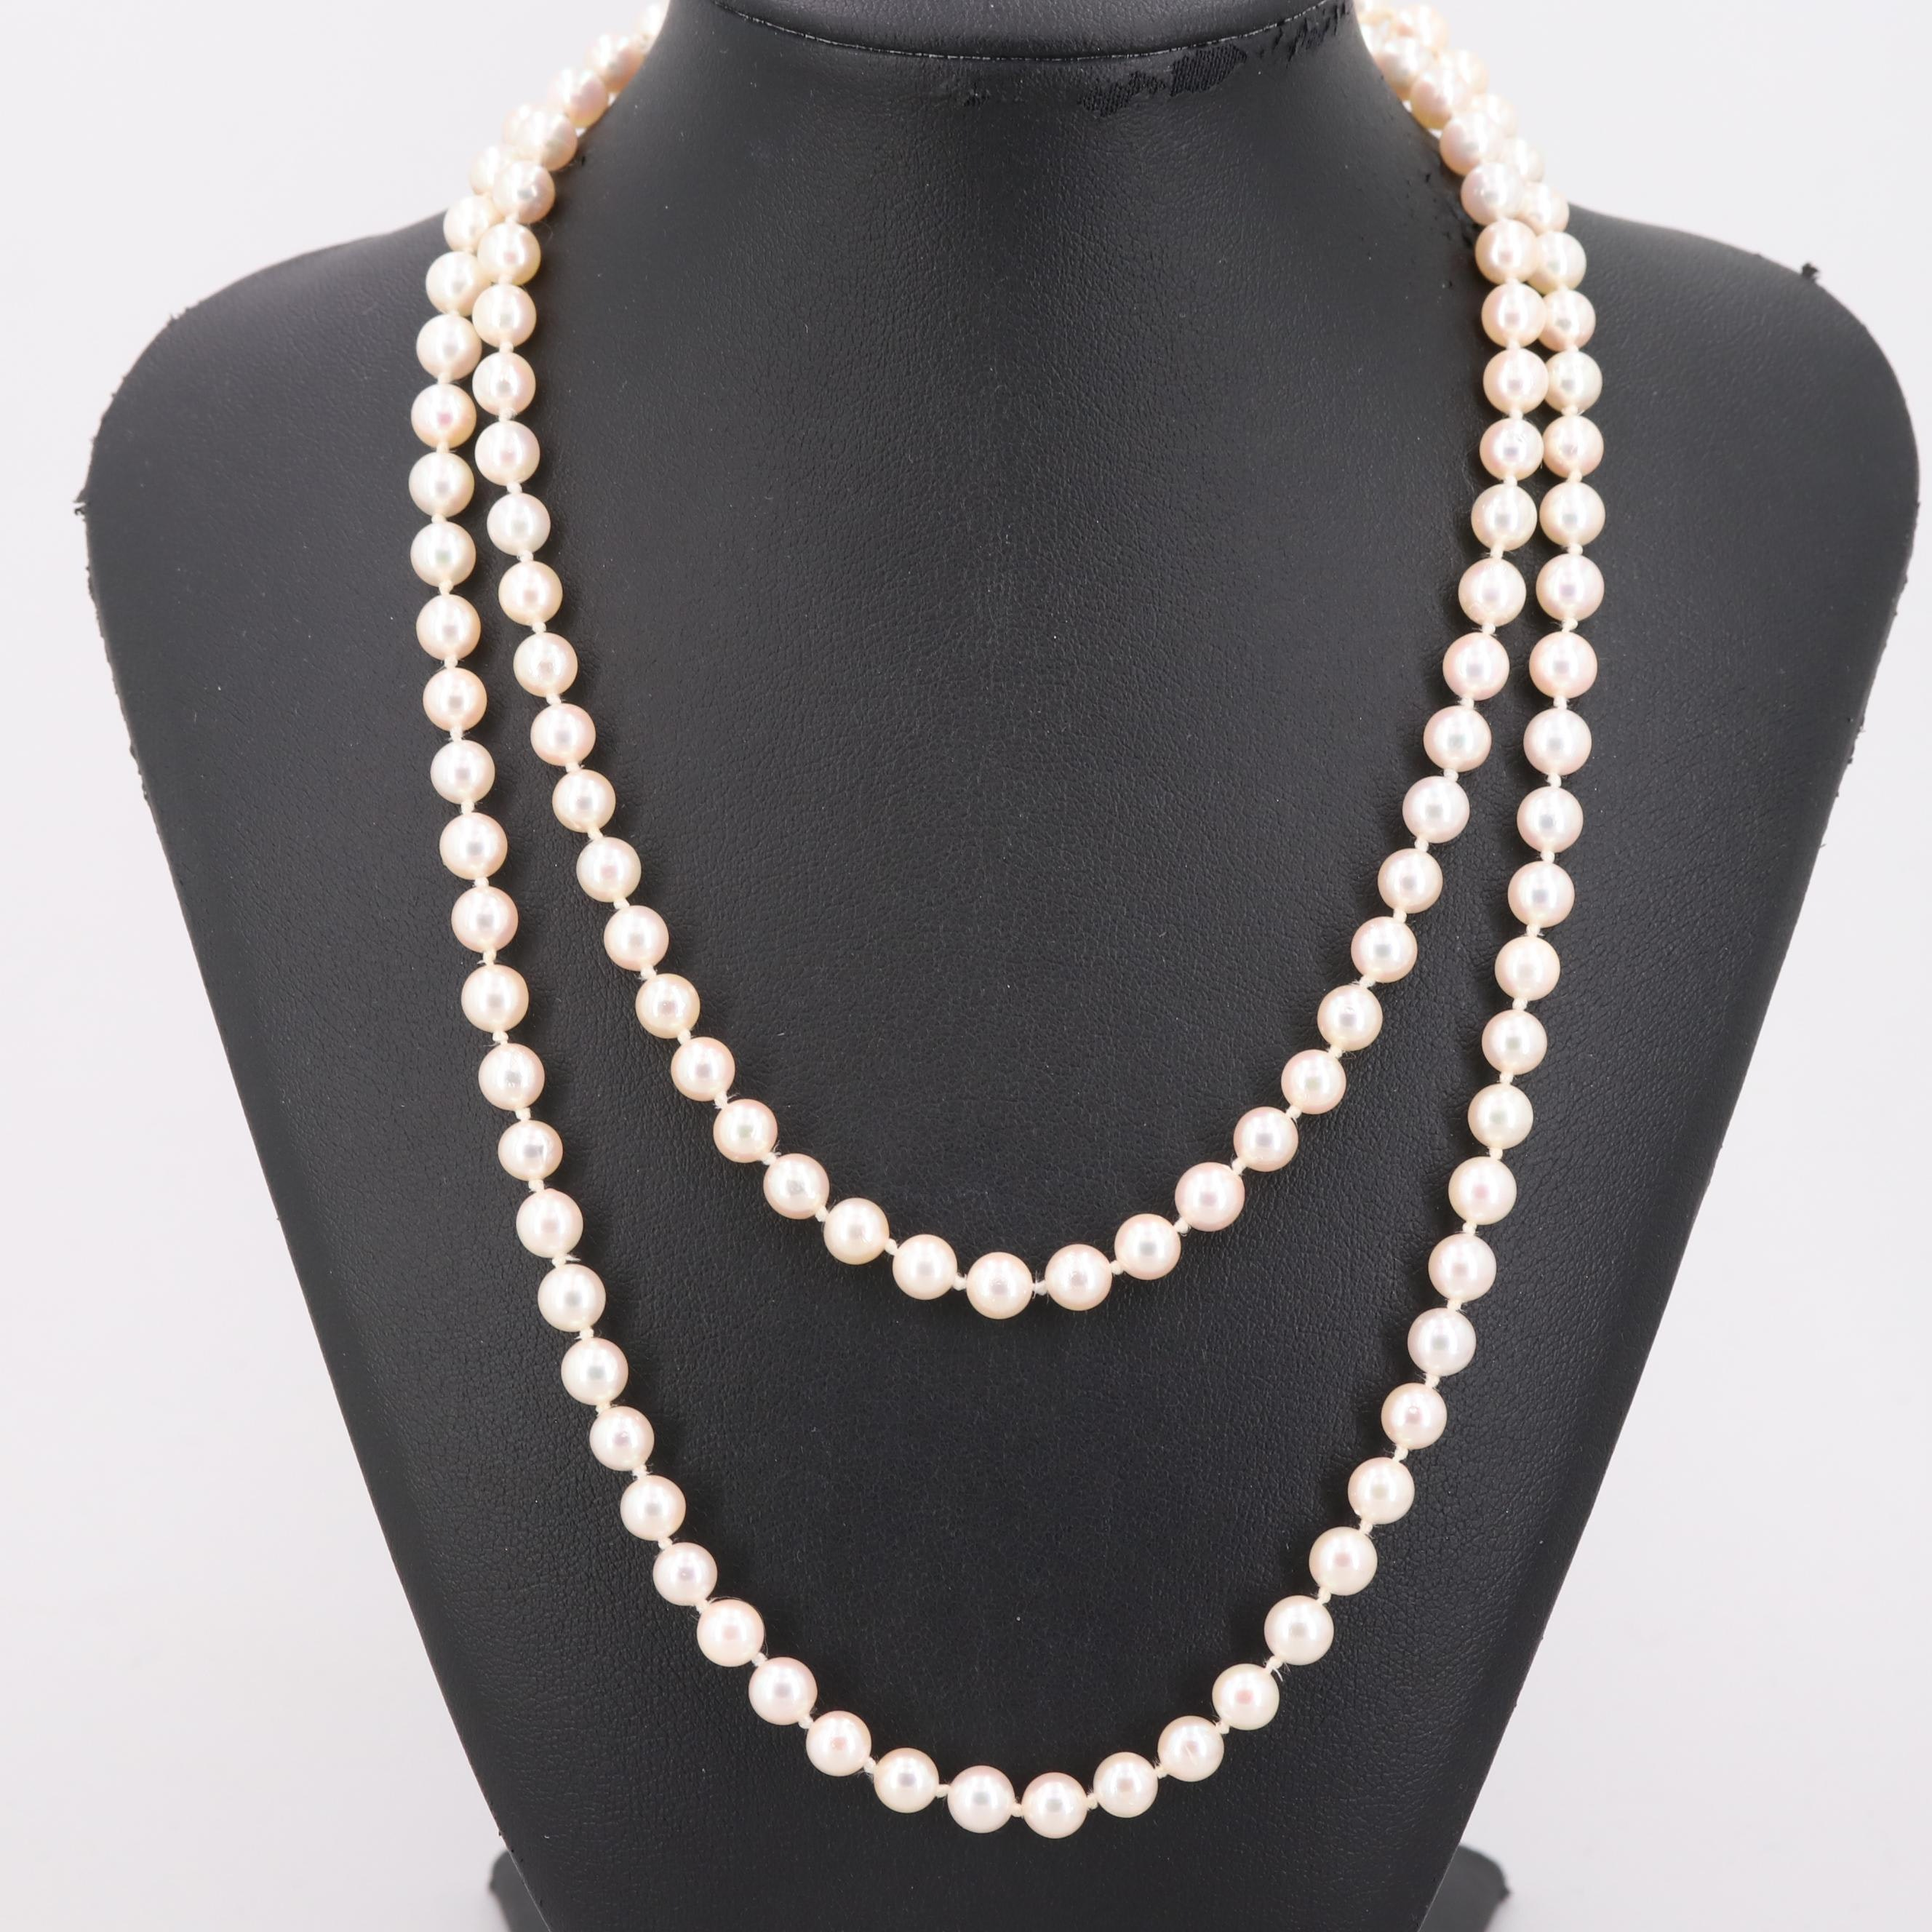 Cultured Pearl Necklace with 14K Yellow Gold Clasp